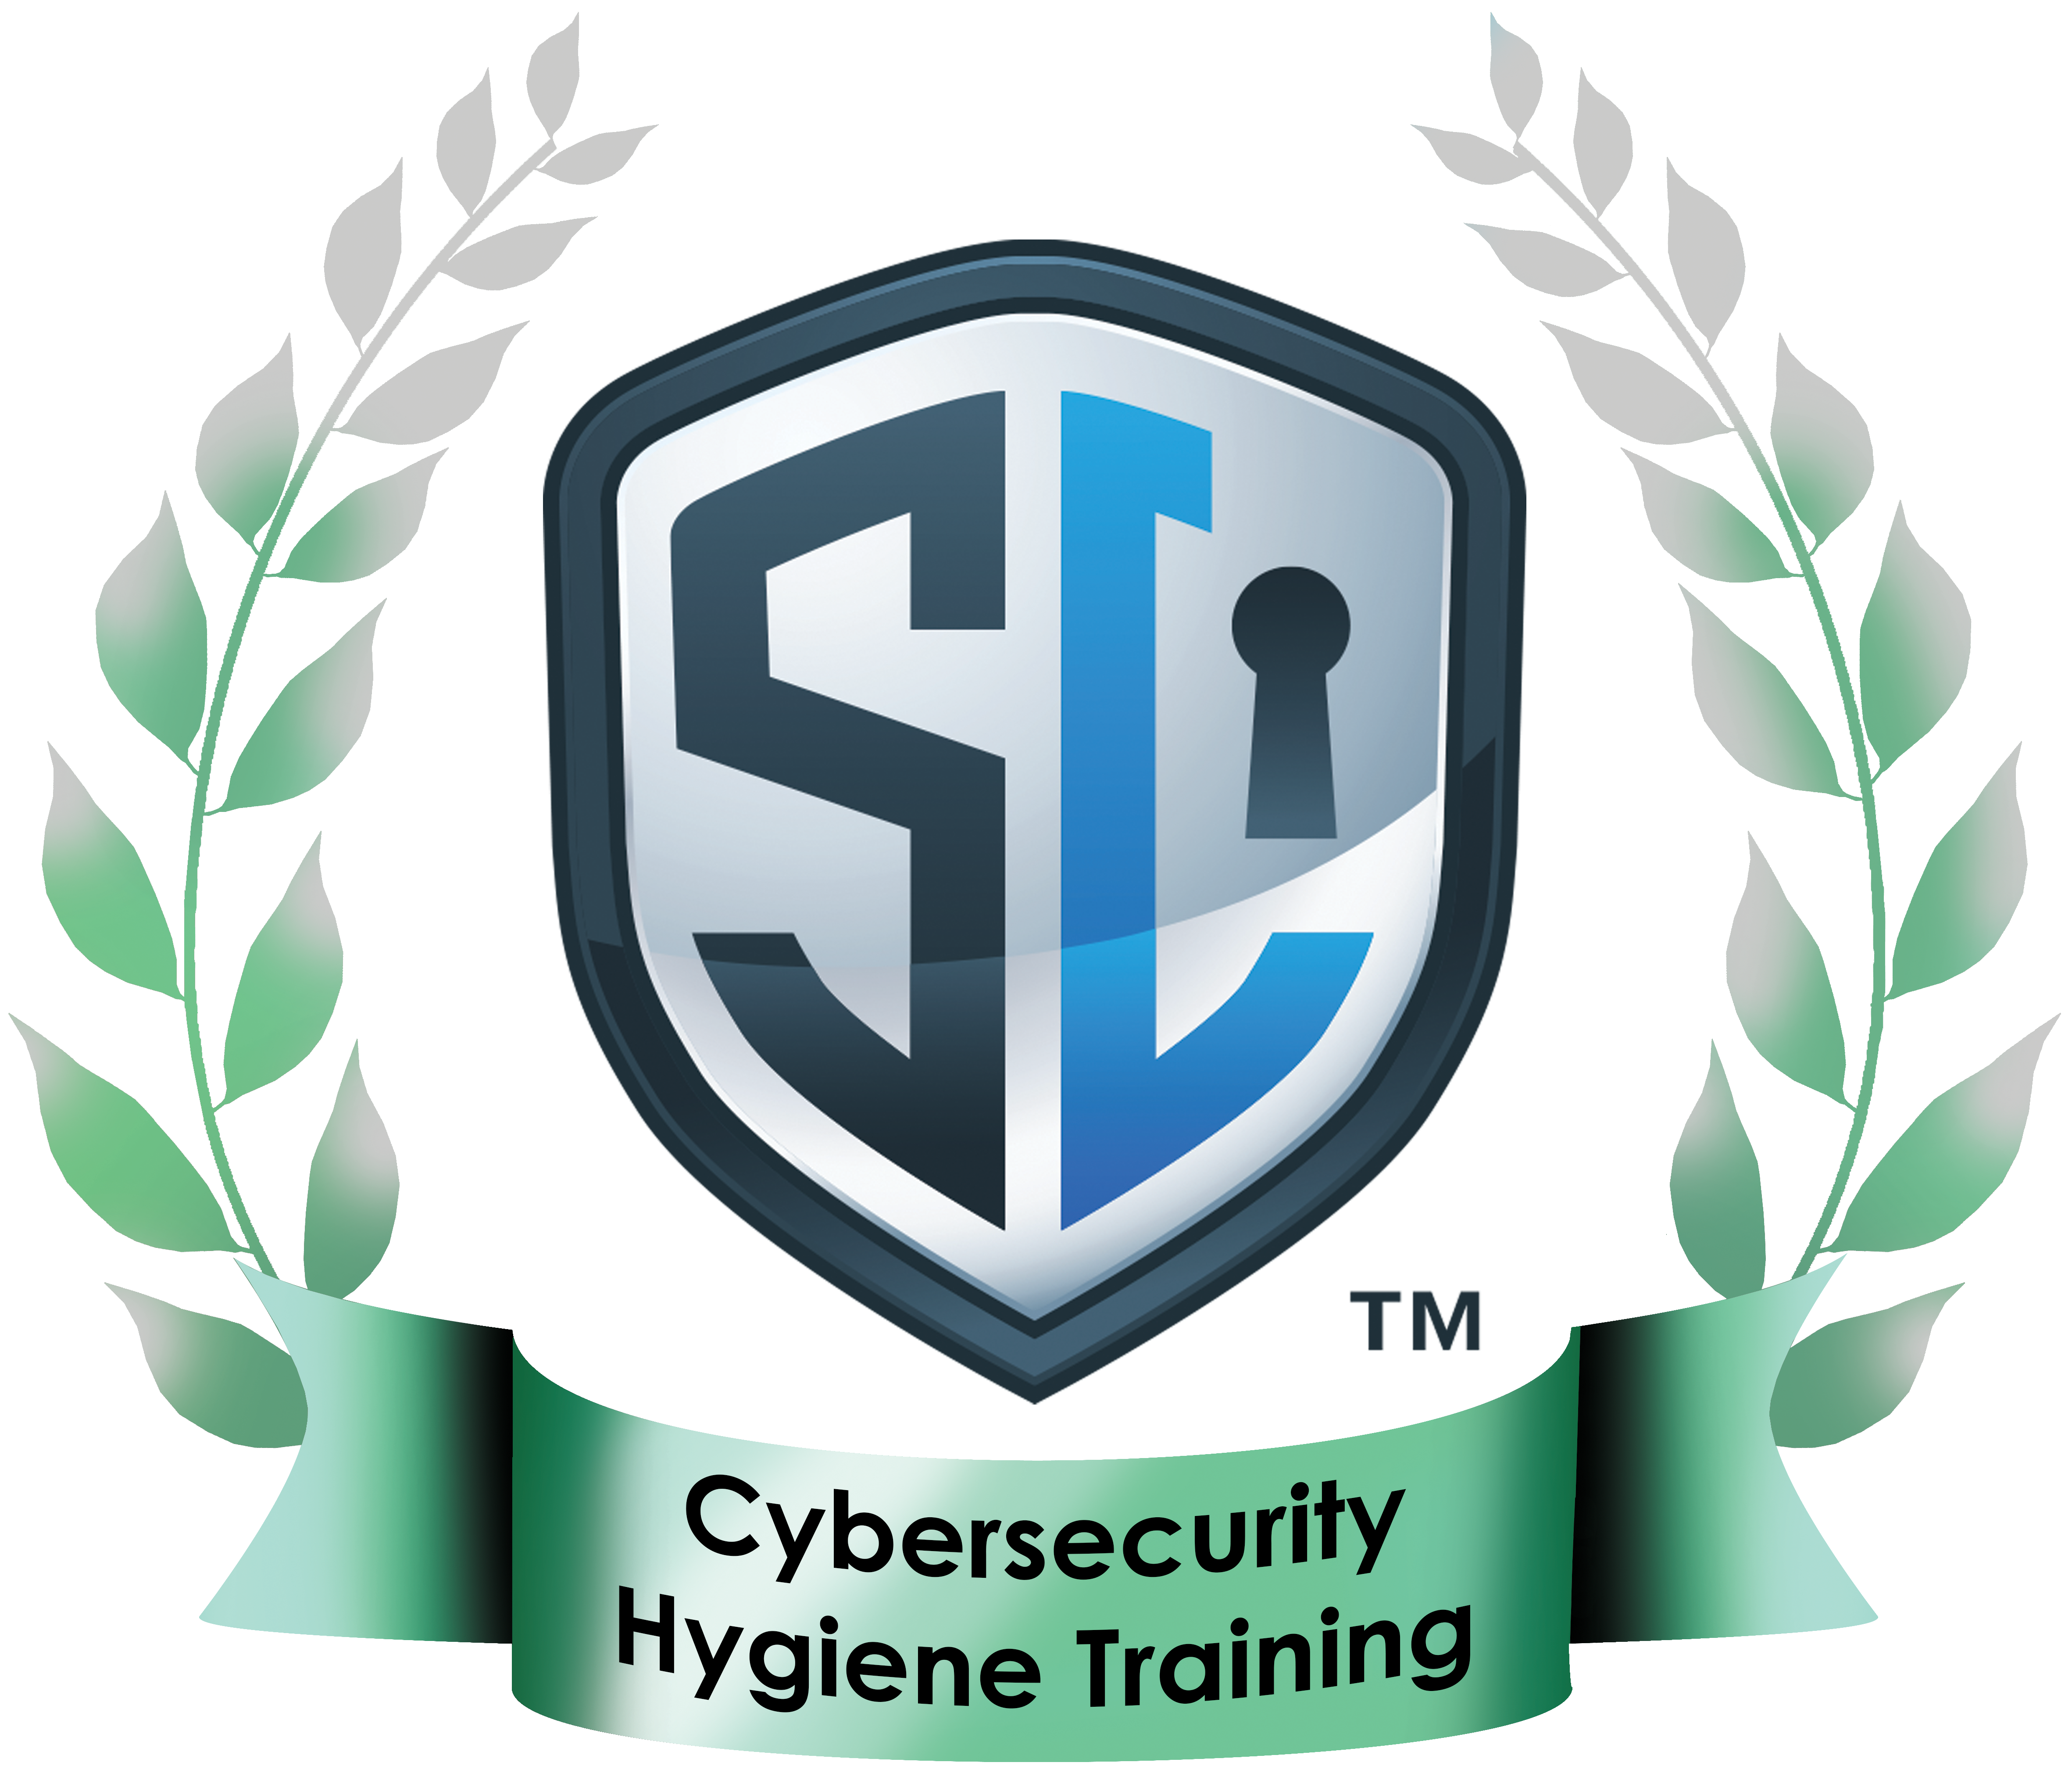 Cybersecurity_Hygiene_Training.png